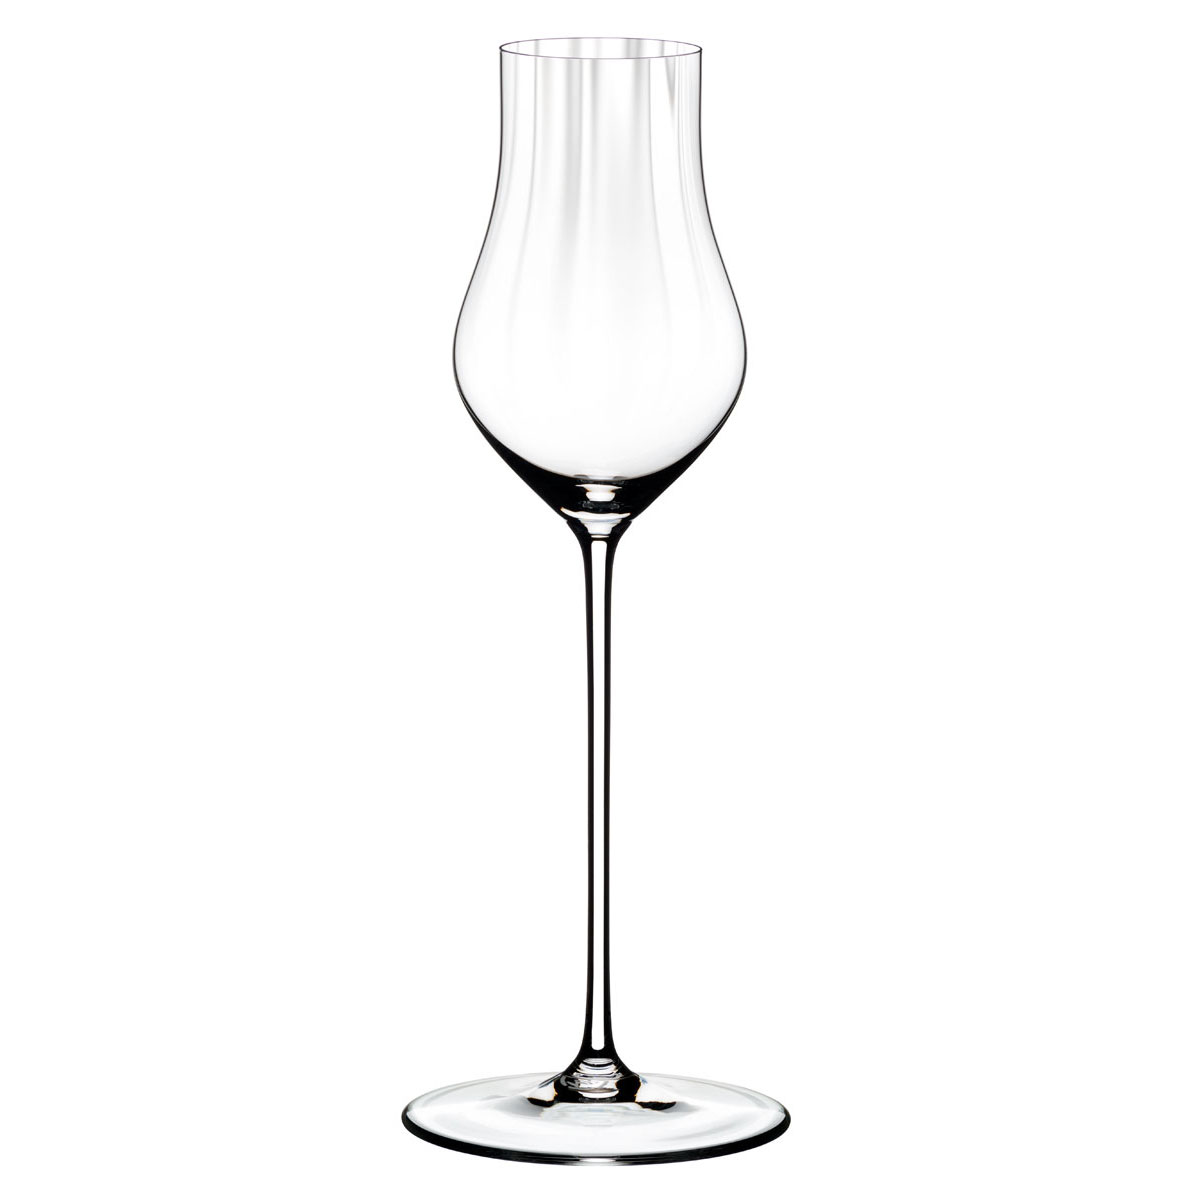 Riedel Performance Spirits Crystal Wine Glasses, Pair